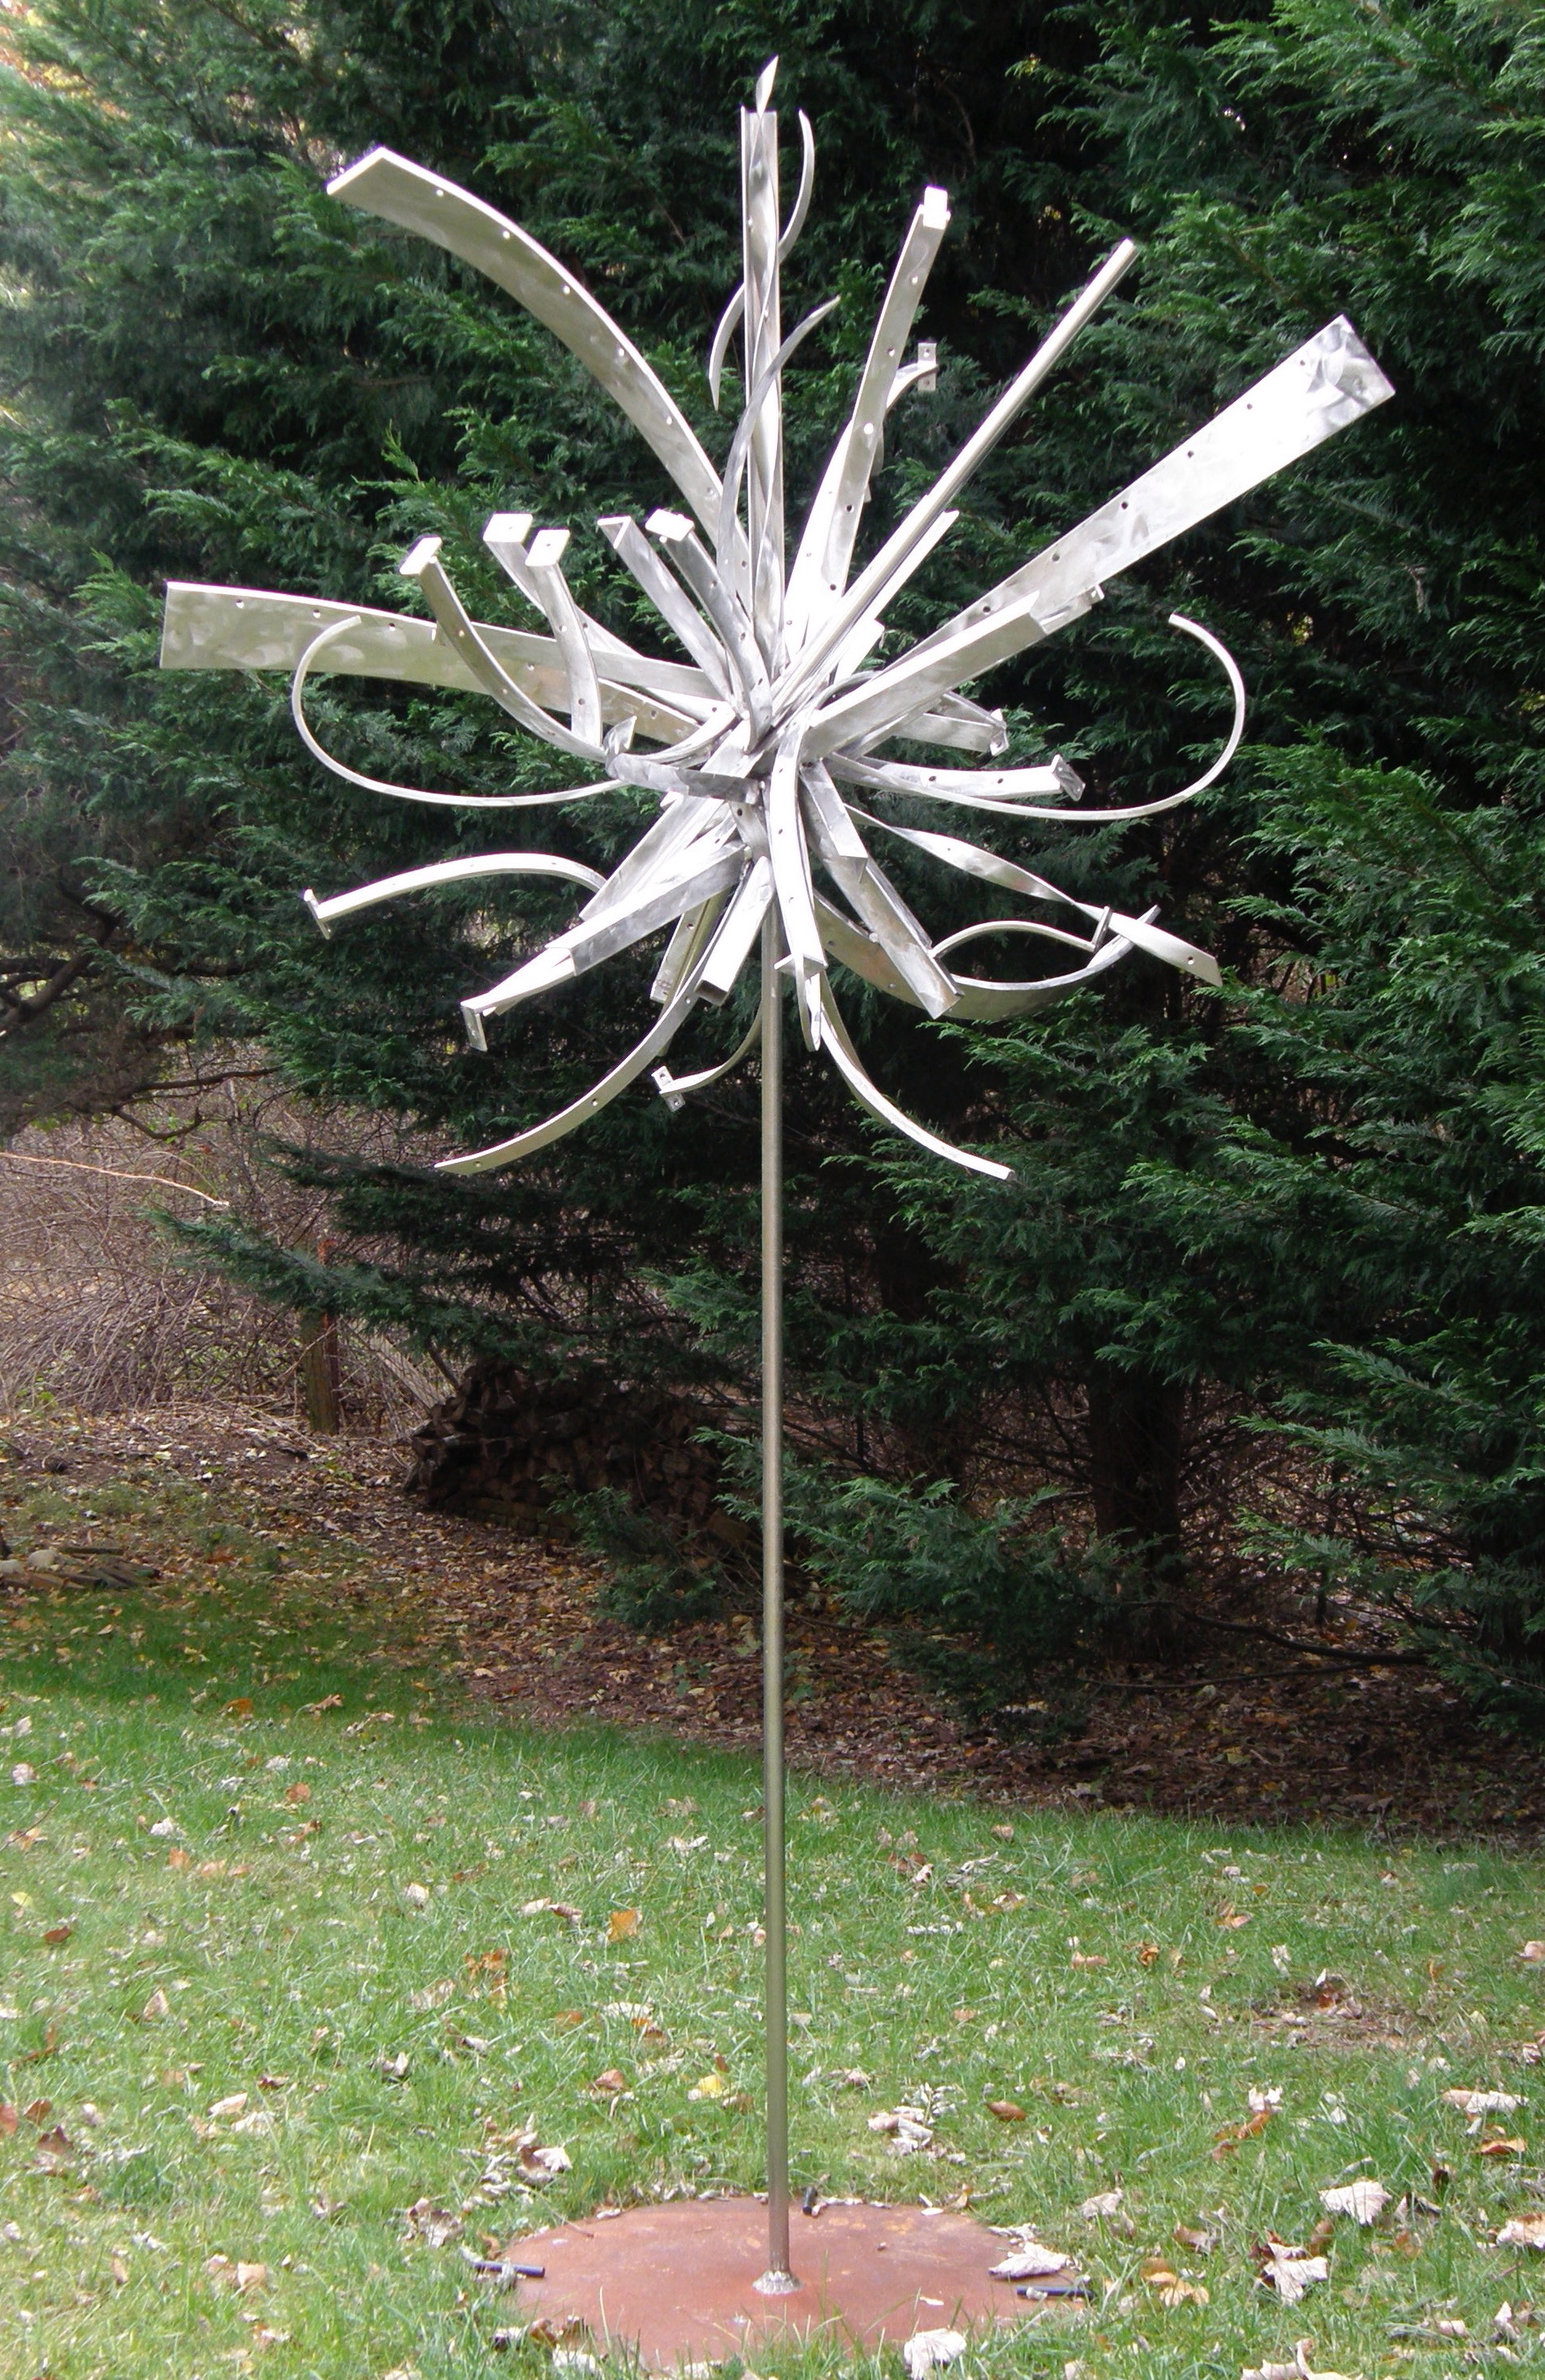 Flower To Seed IV, 2006, stainless steel, 9 x 4 x 4 in, SOLD